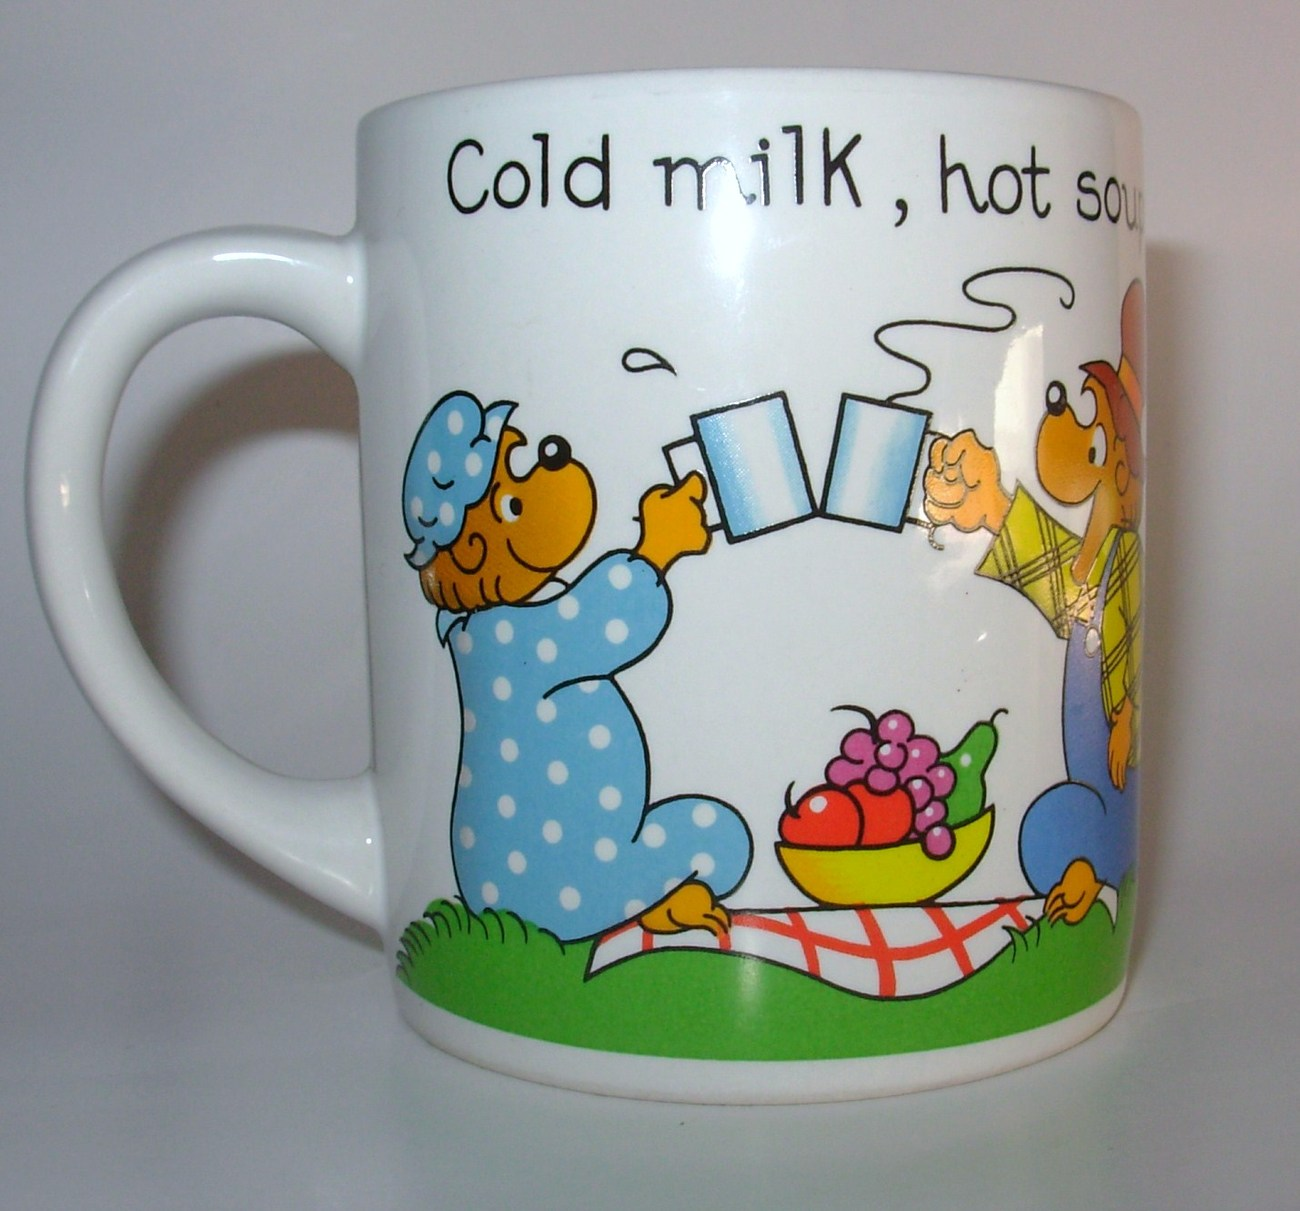 Berenstain Bears Coffee Cup Mug Ice Cream Soda Graphic Vintage